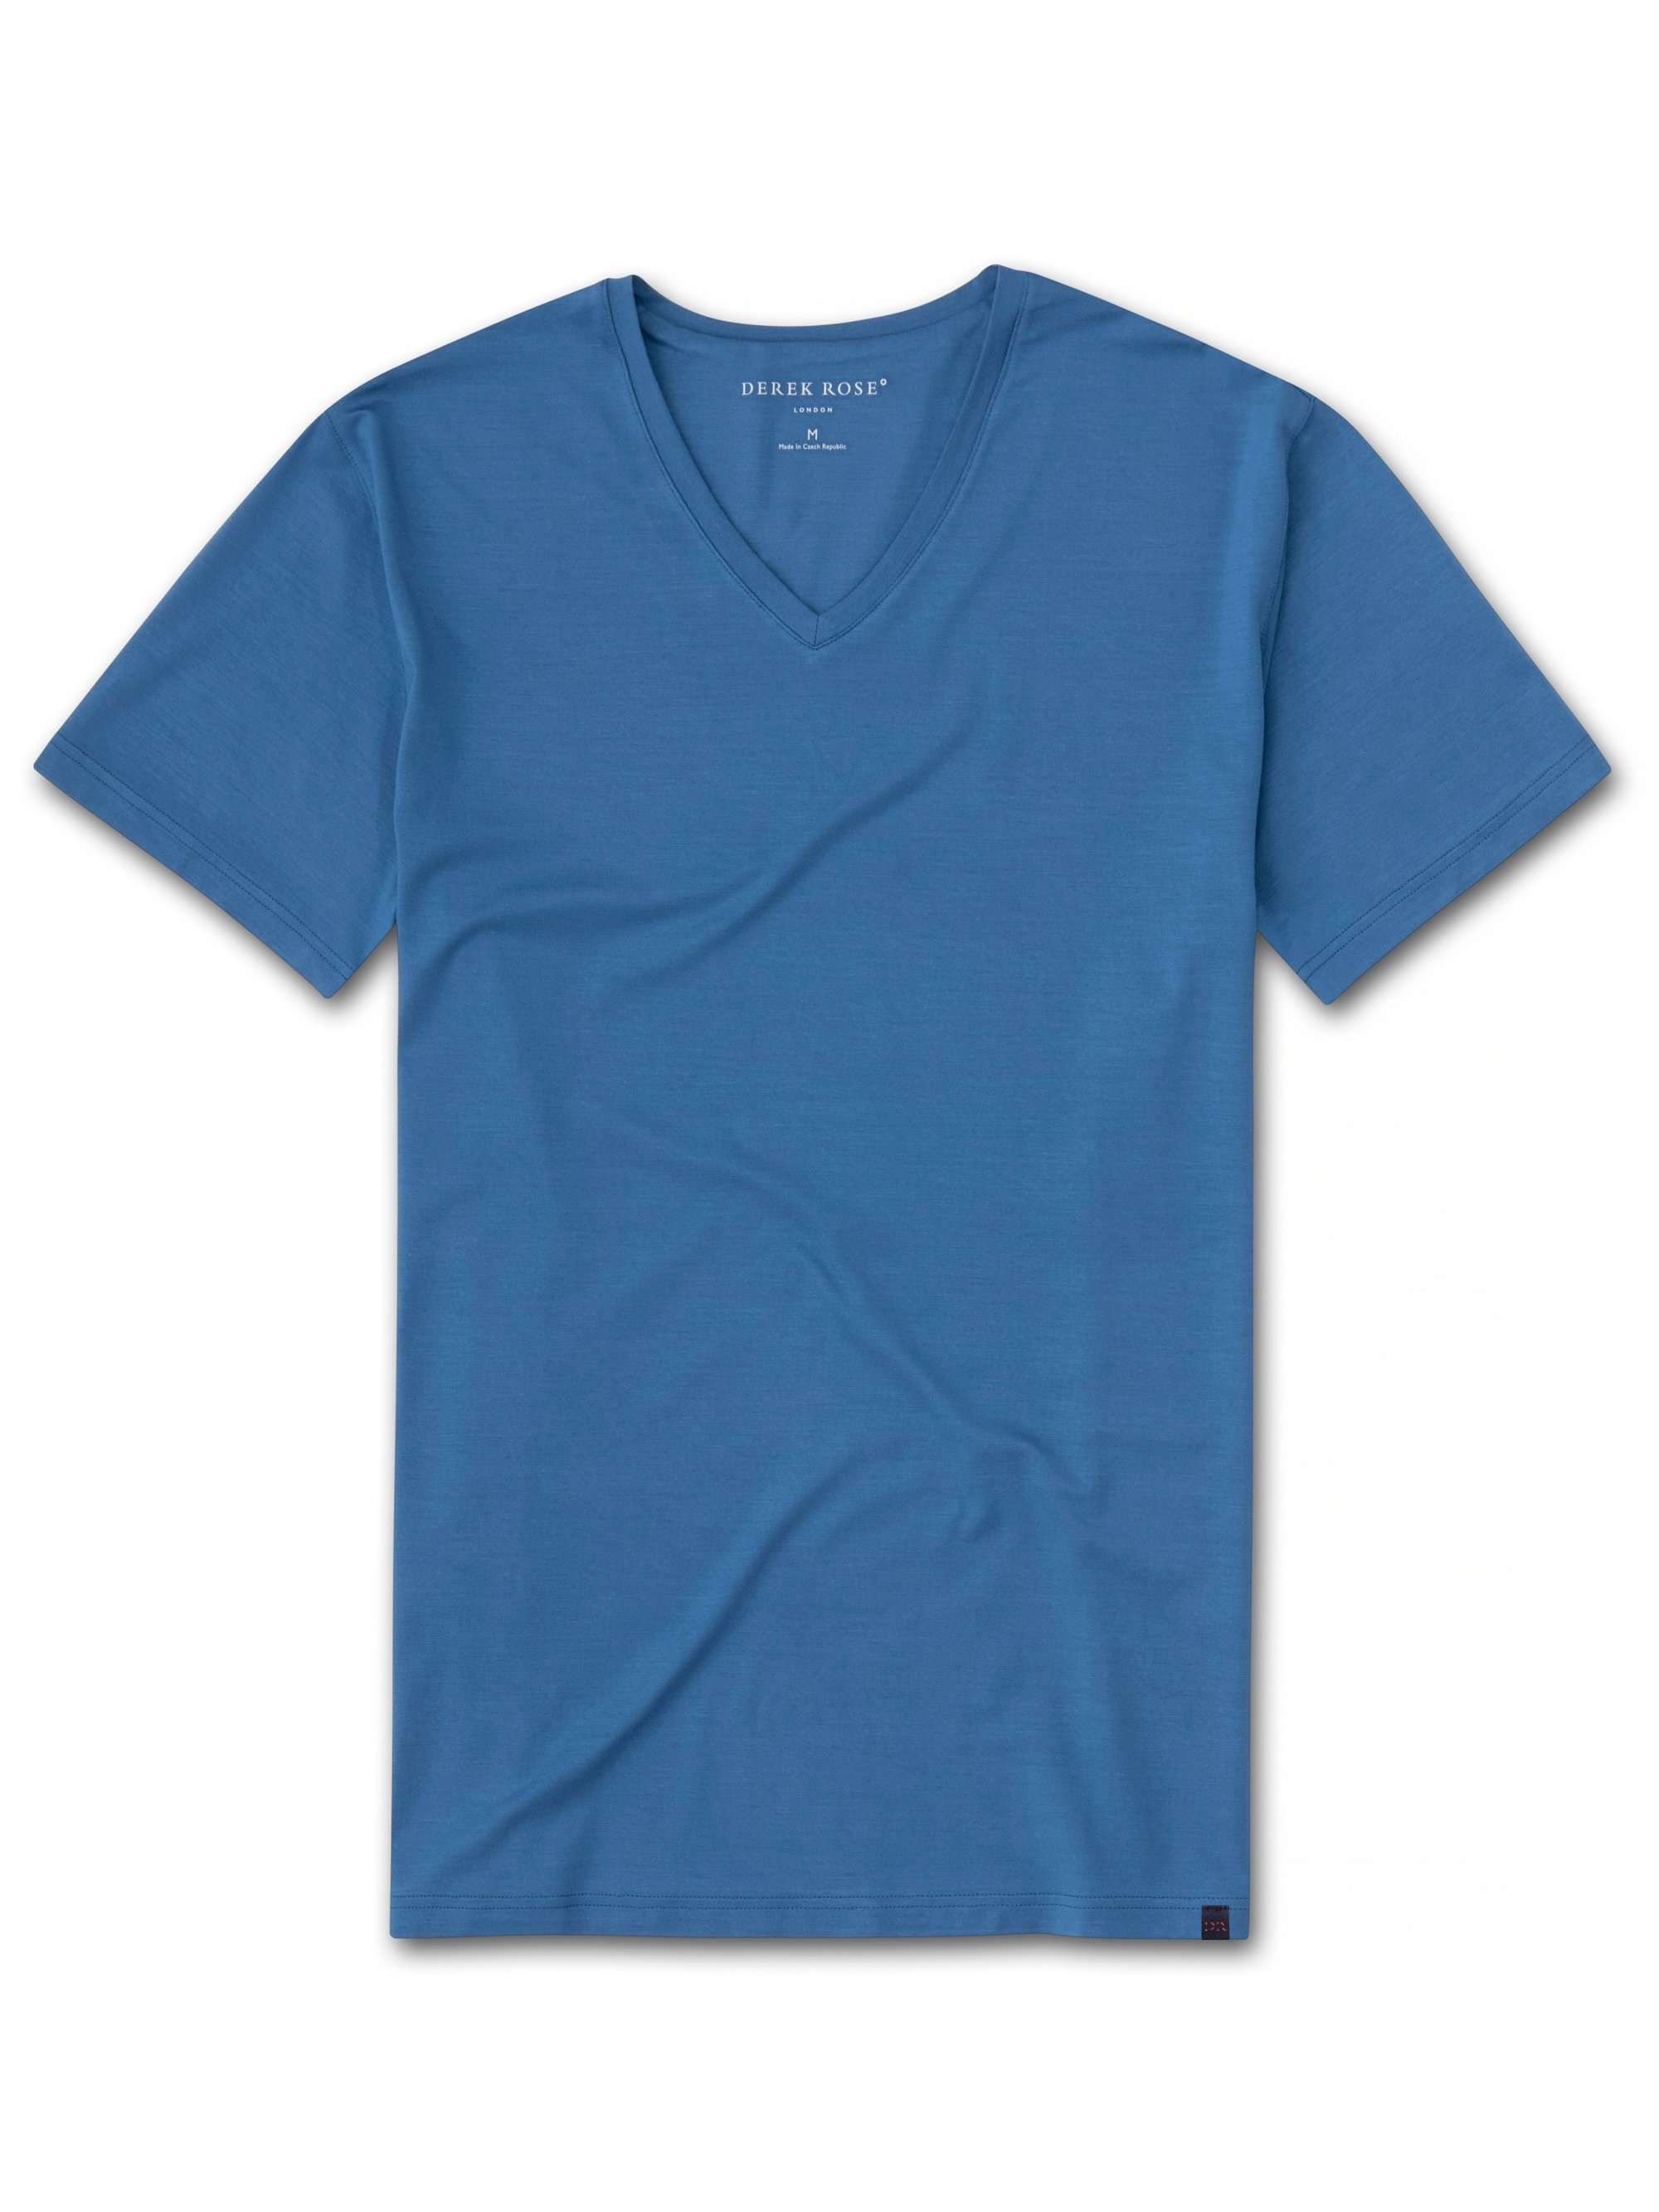 Men's Short Sleeve V-Neck T-Shirt Basel 9 Micro Modal Stretch Blue